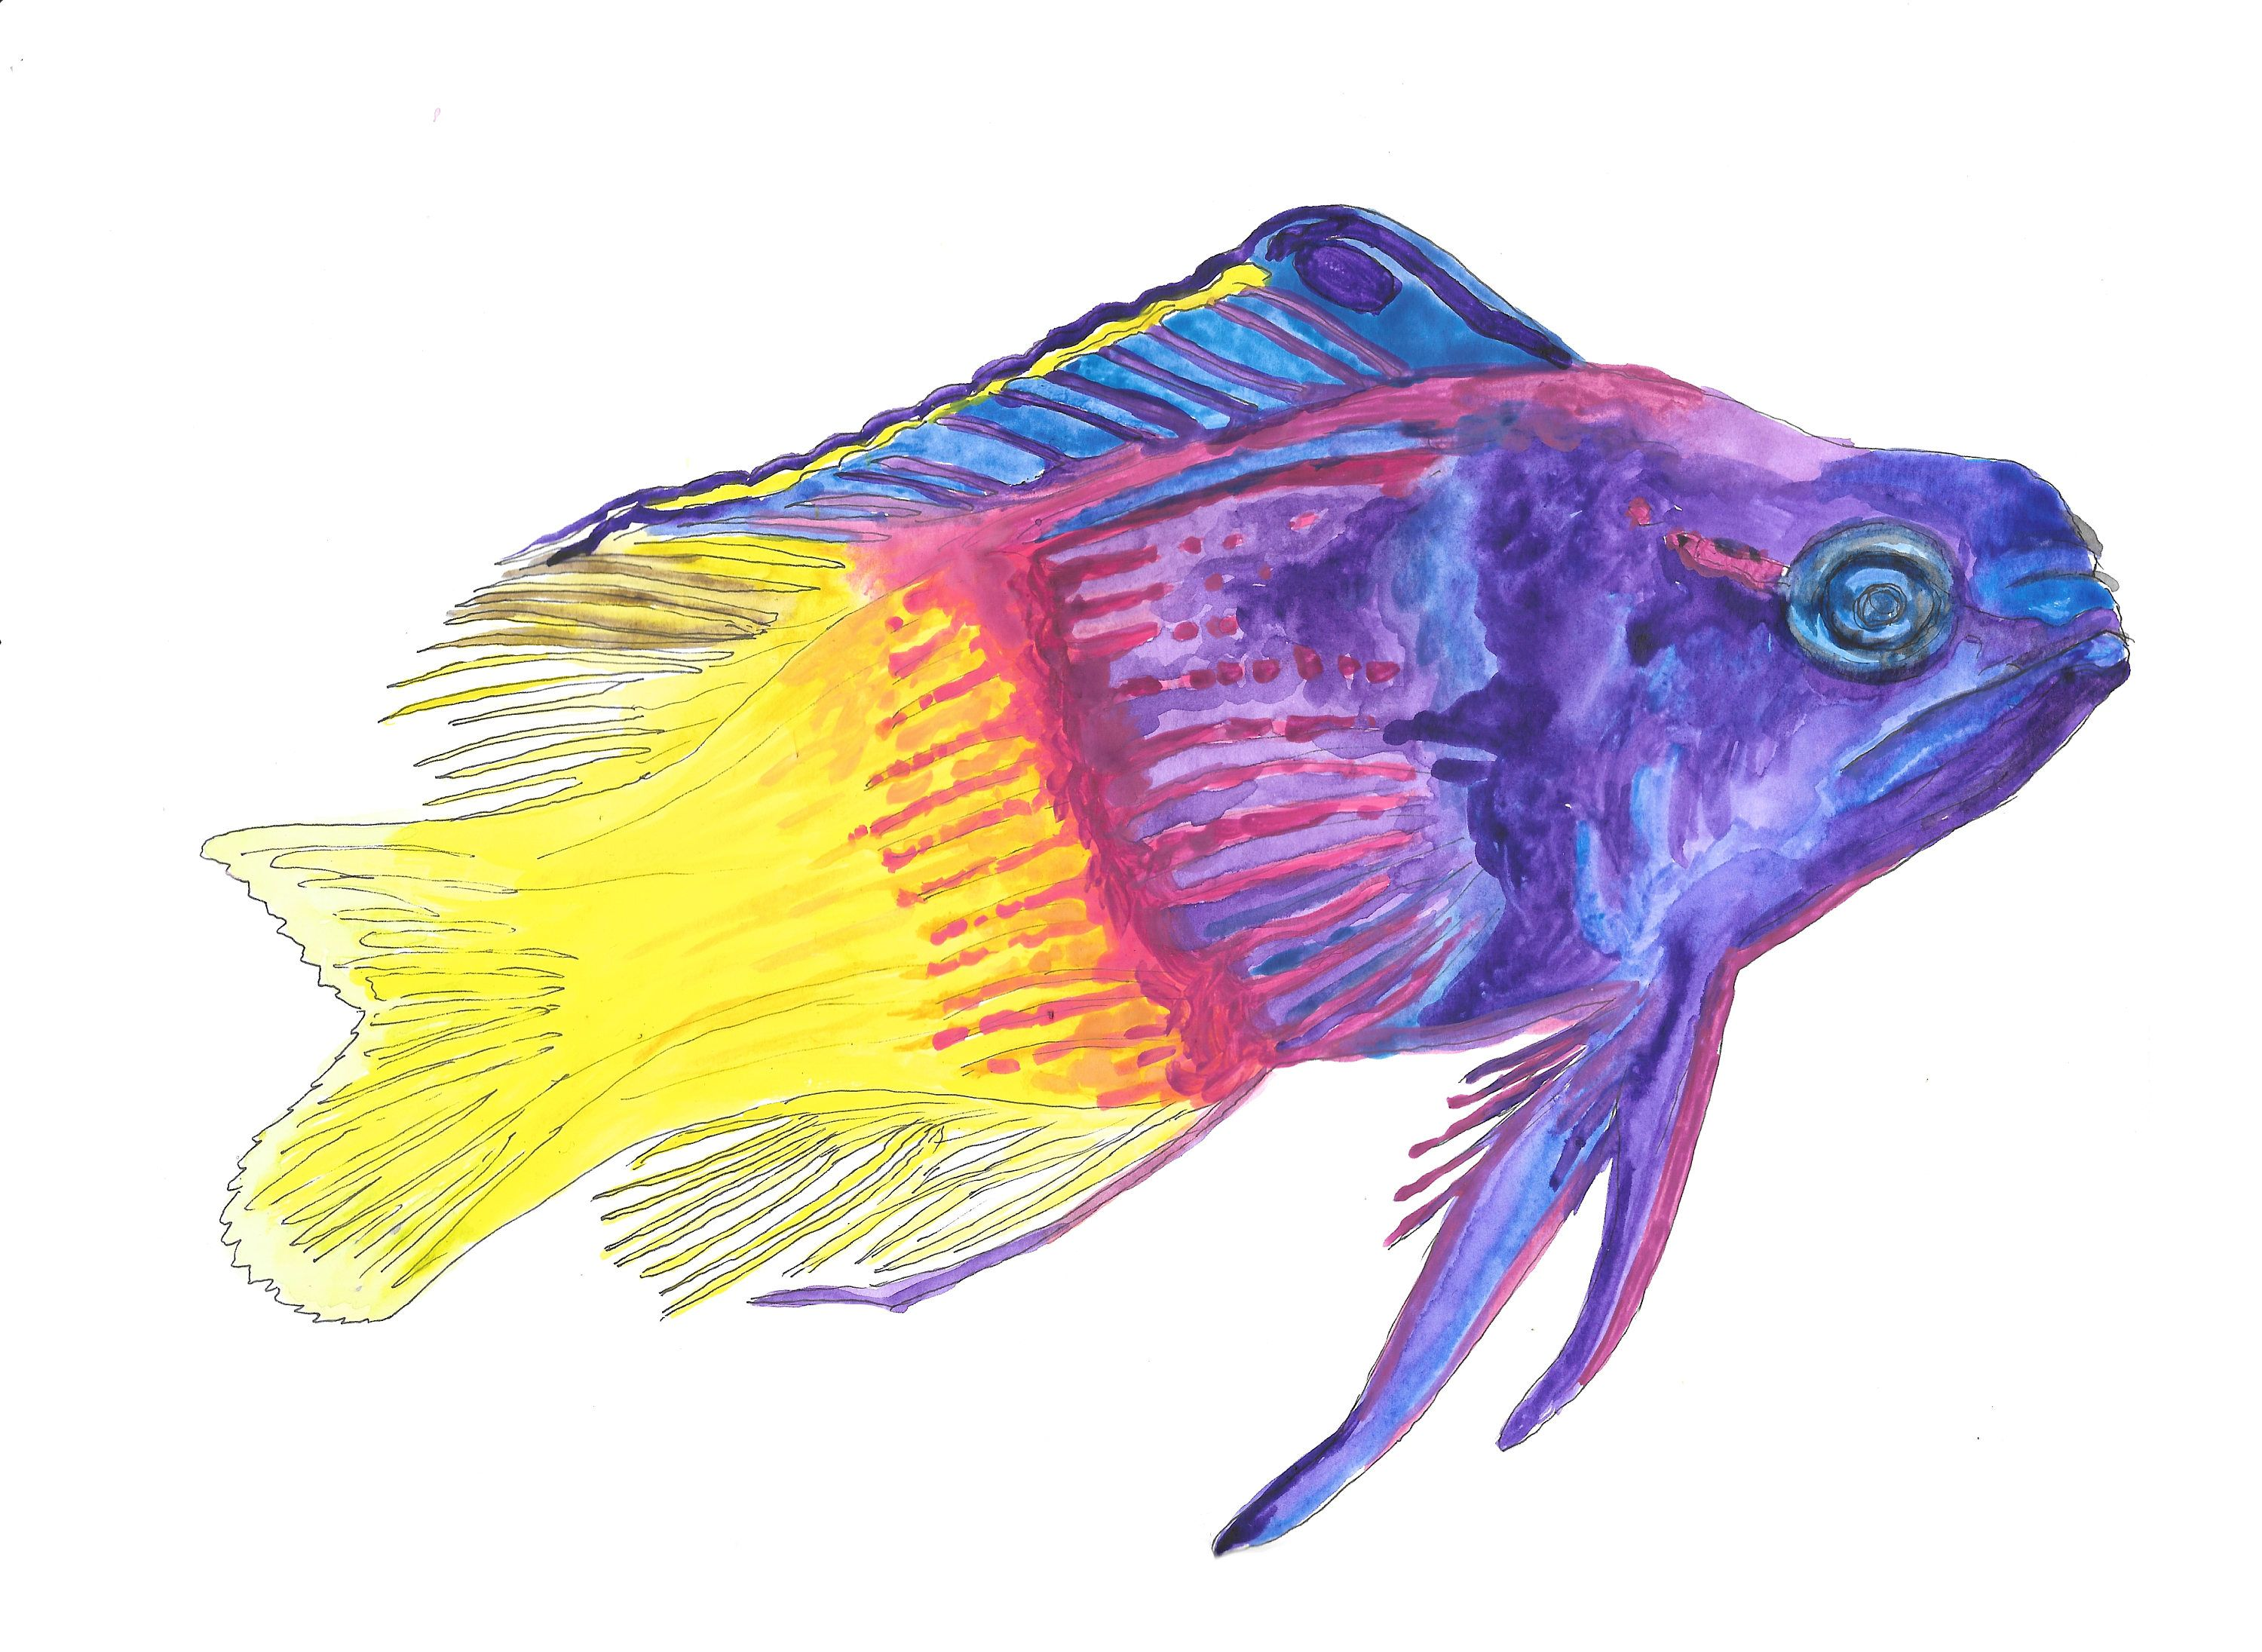 Royal Gramma Fish Hand Drawn Watercolor Illustration By Robertatomei On Etsy How To Draw Hands Watercolor Illustration Watercolor